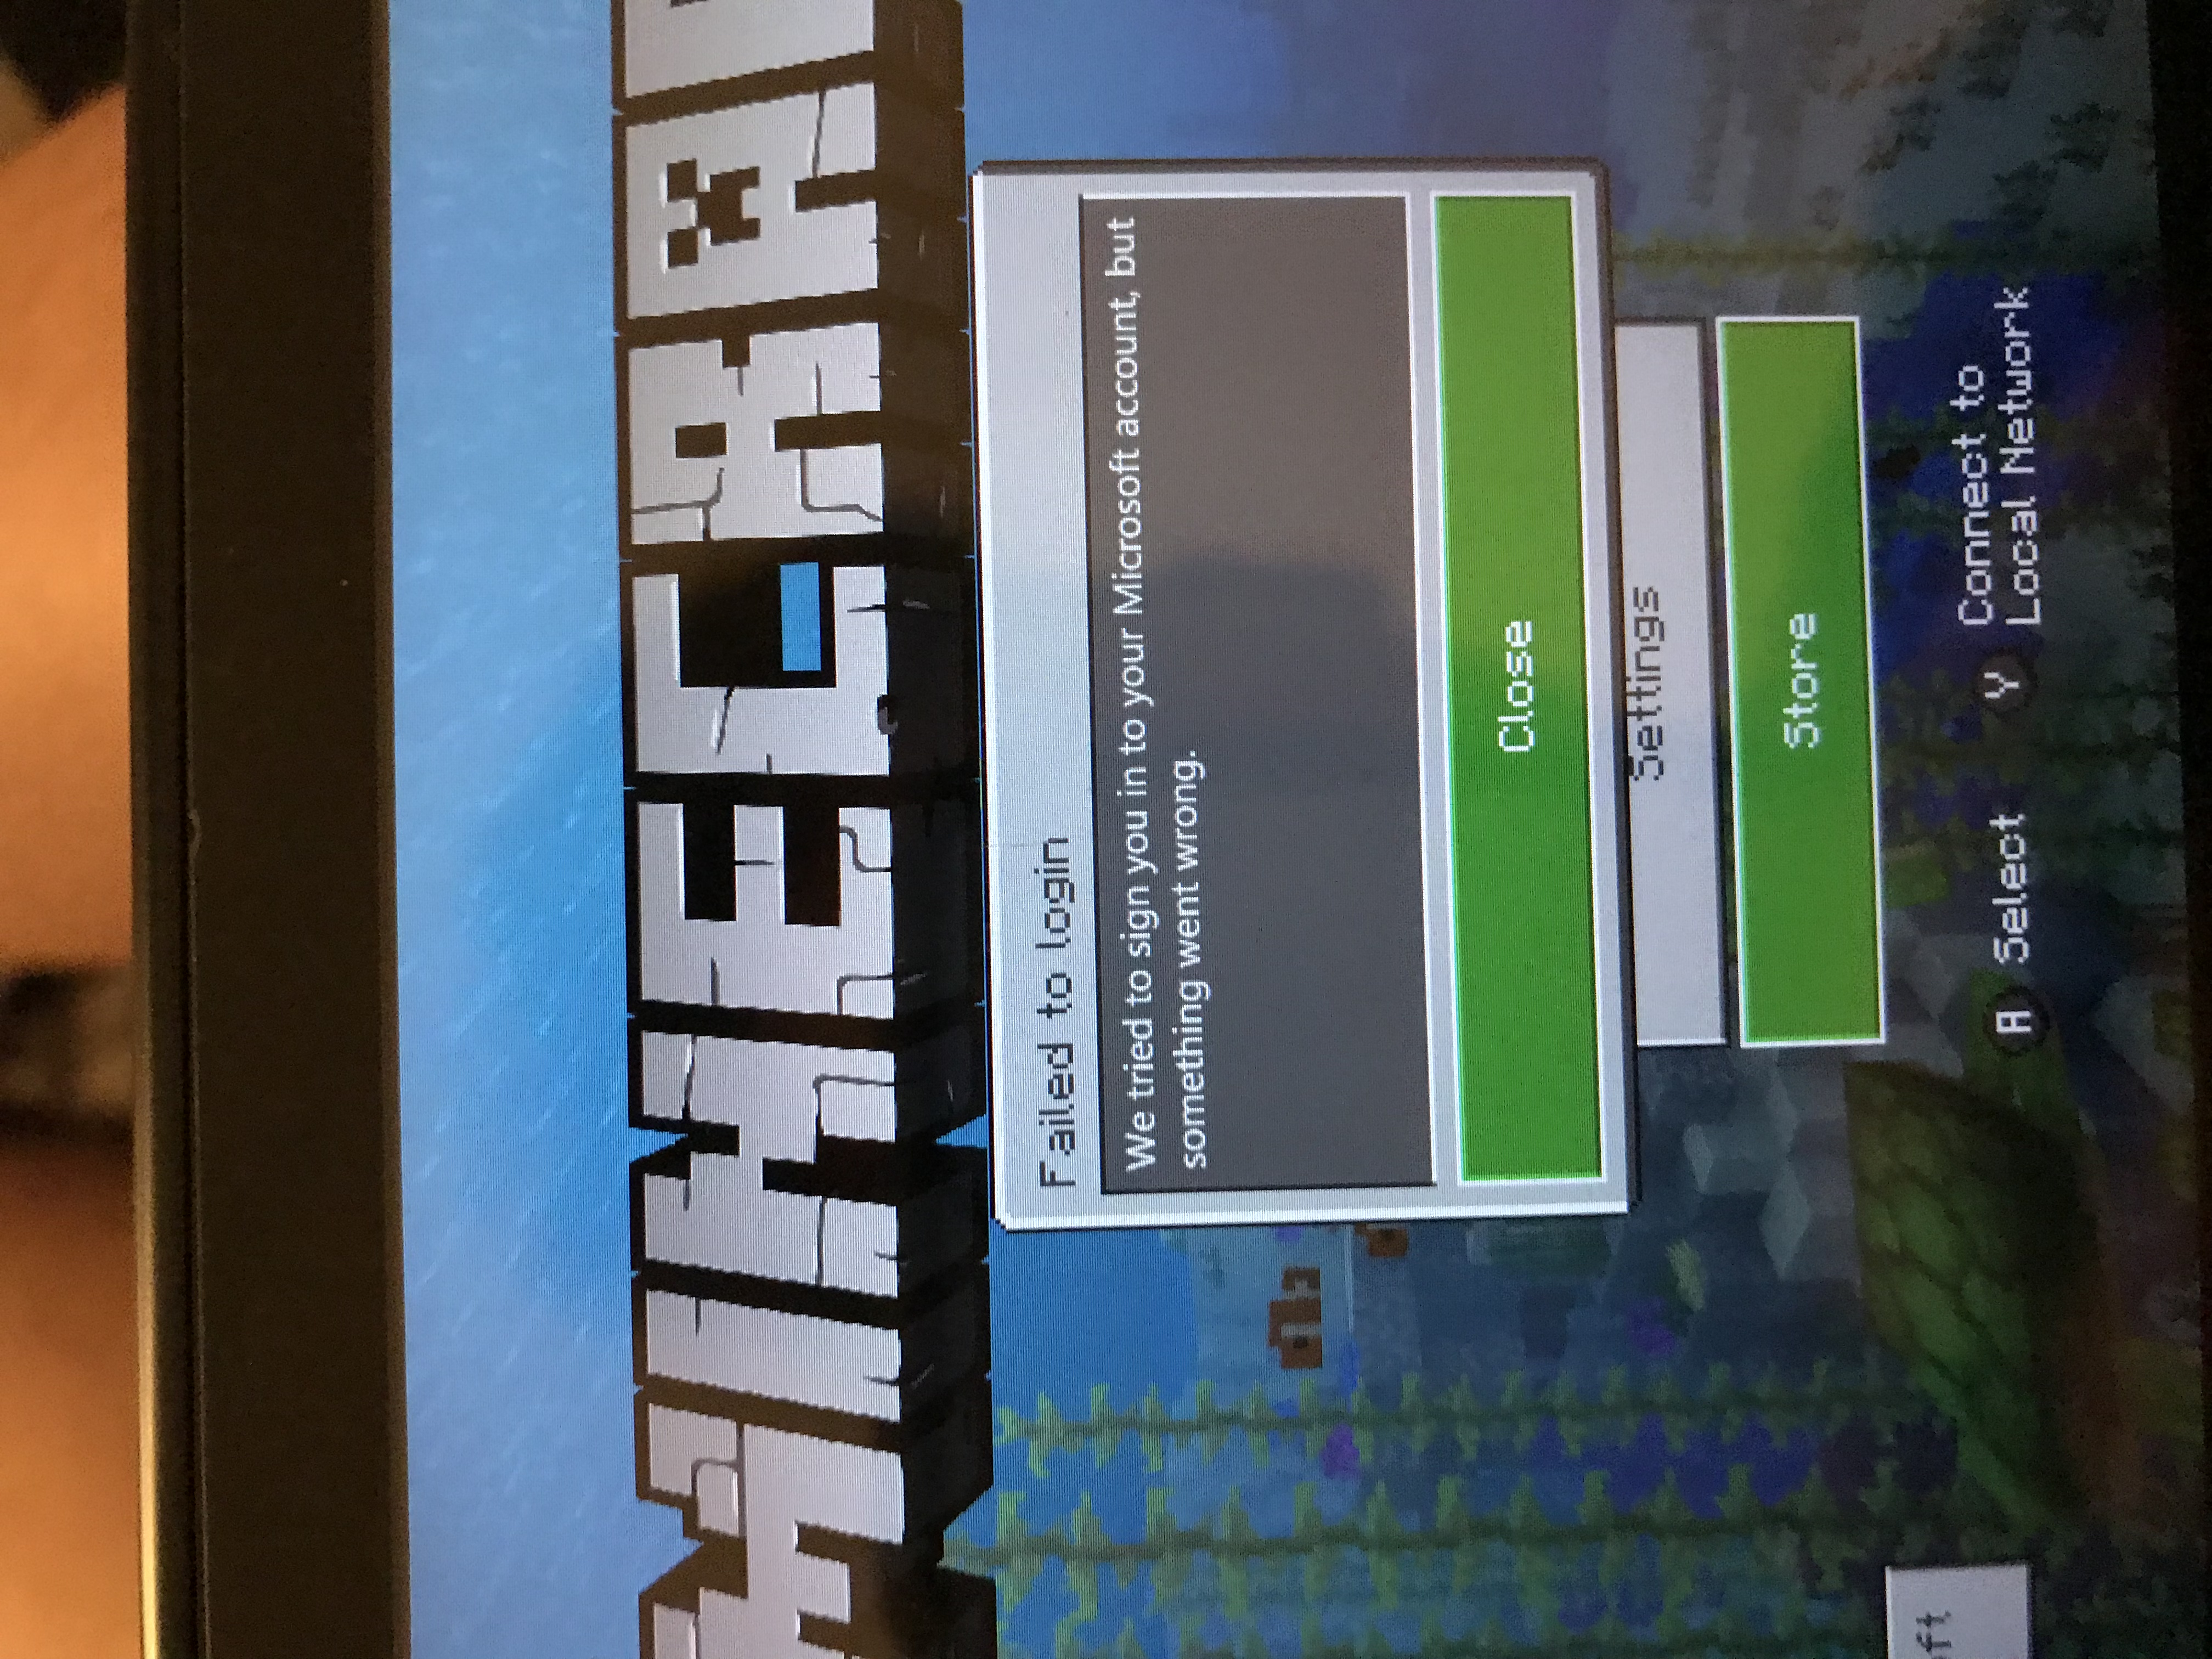 MCPE-36088] Login on Microsoft on Minecraft fails and there